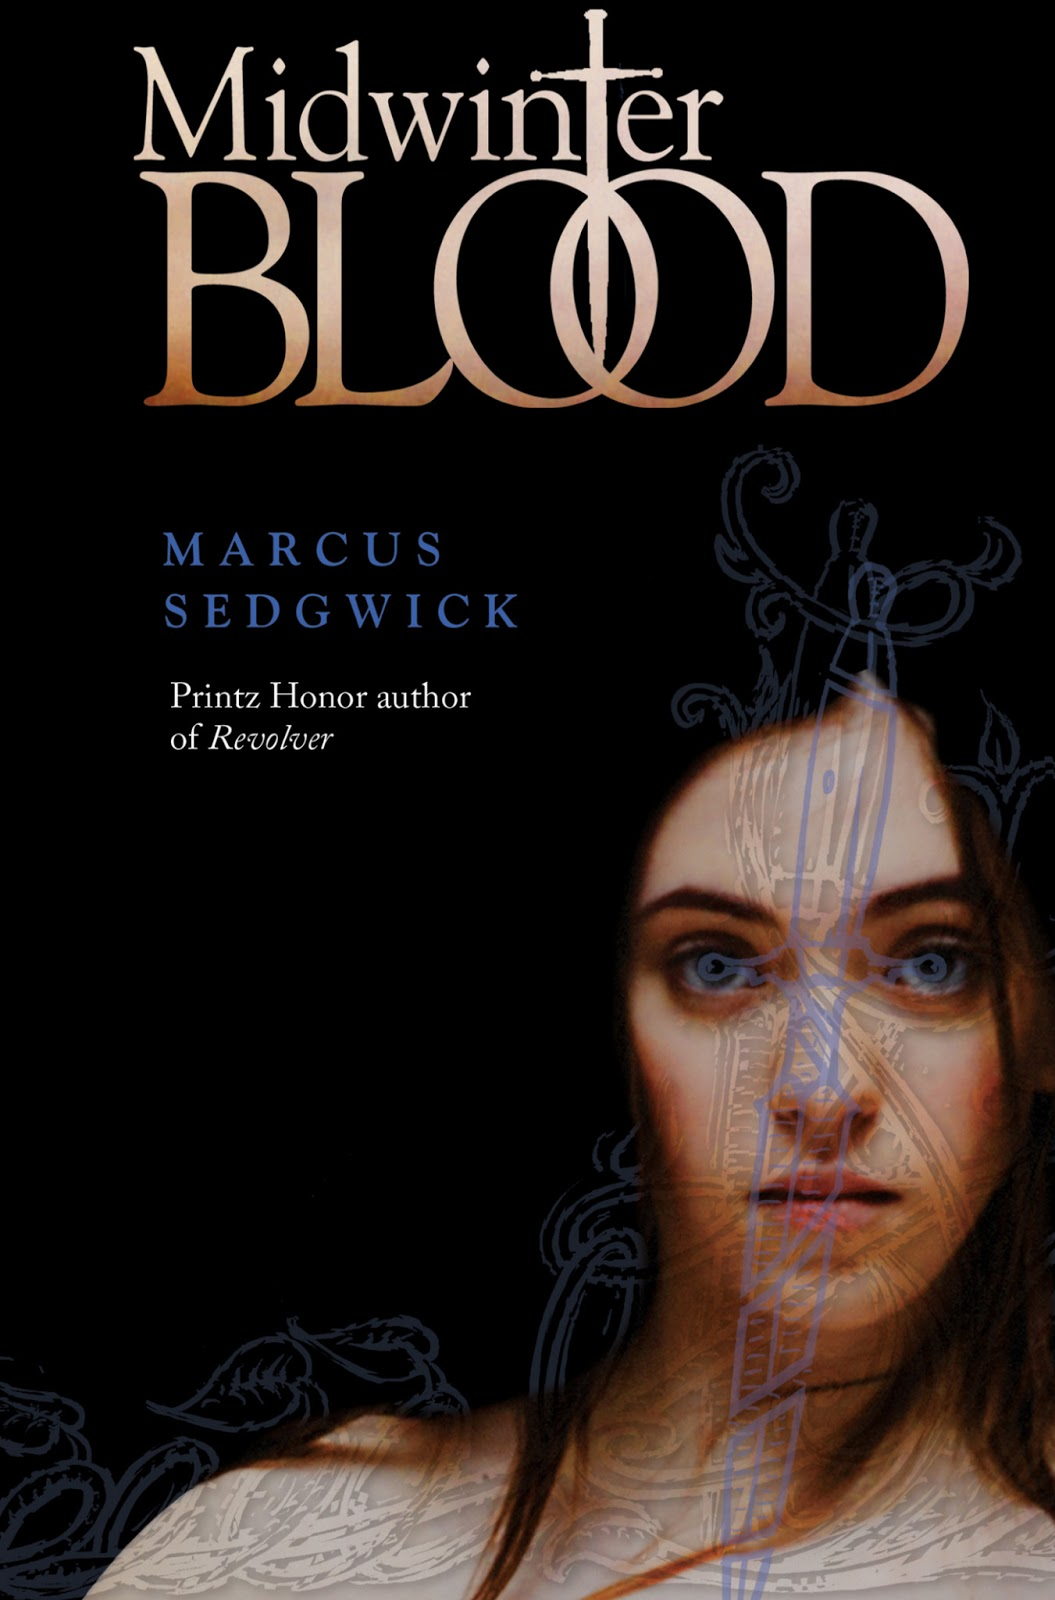 Midwinterblood Marcus Sedgwick book cover